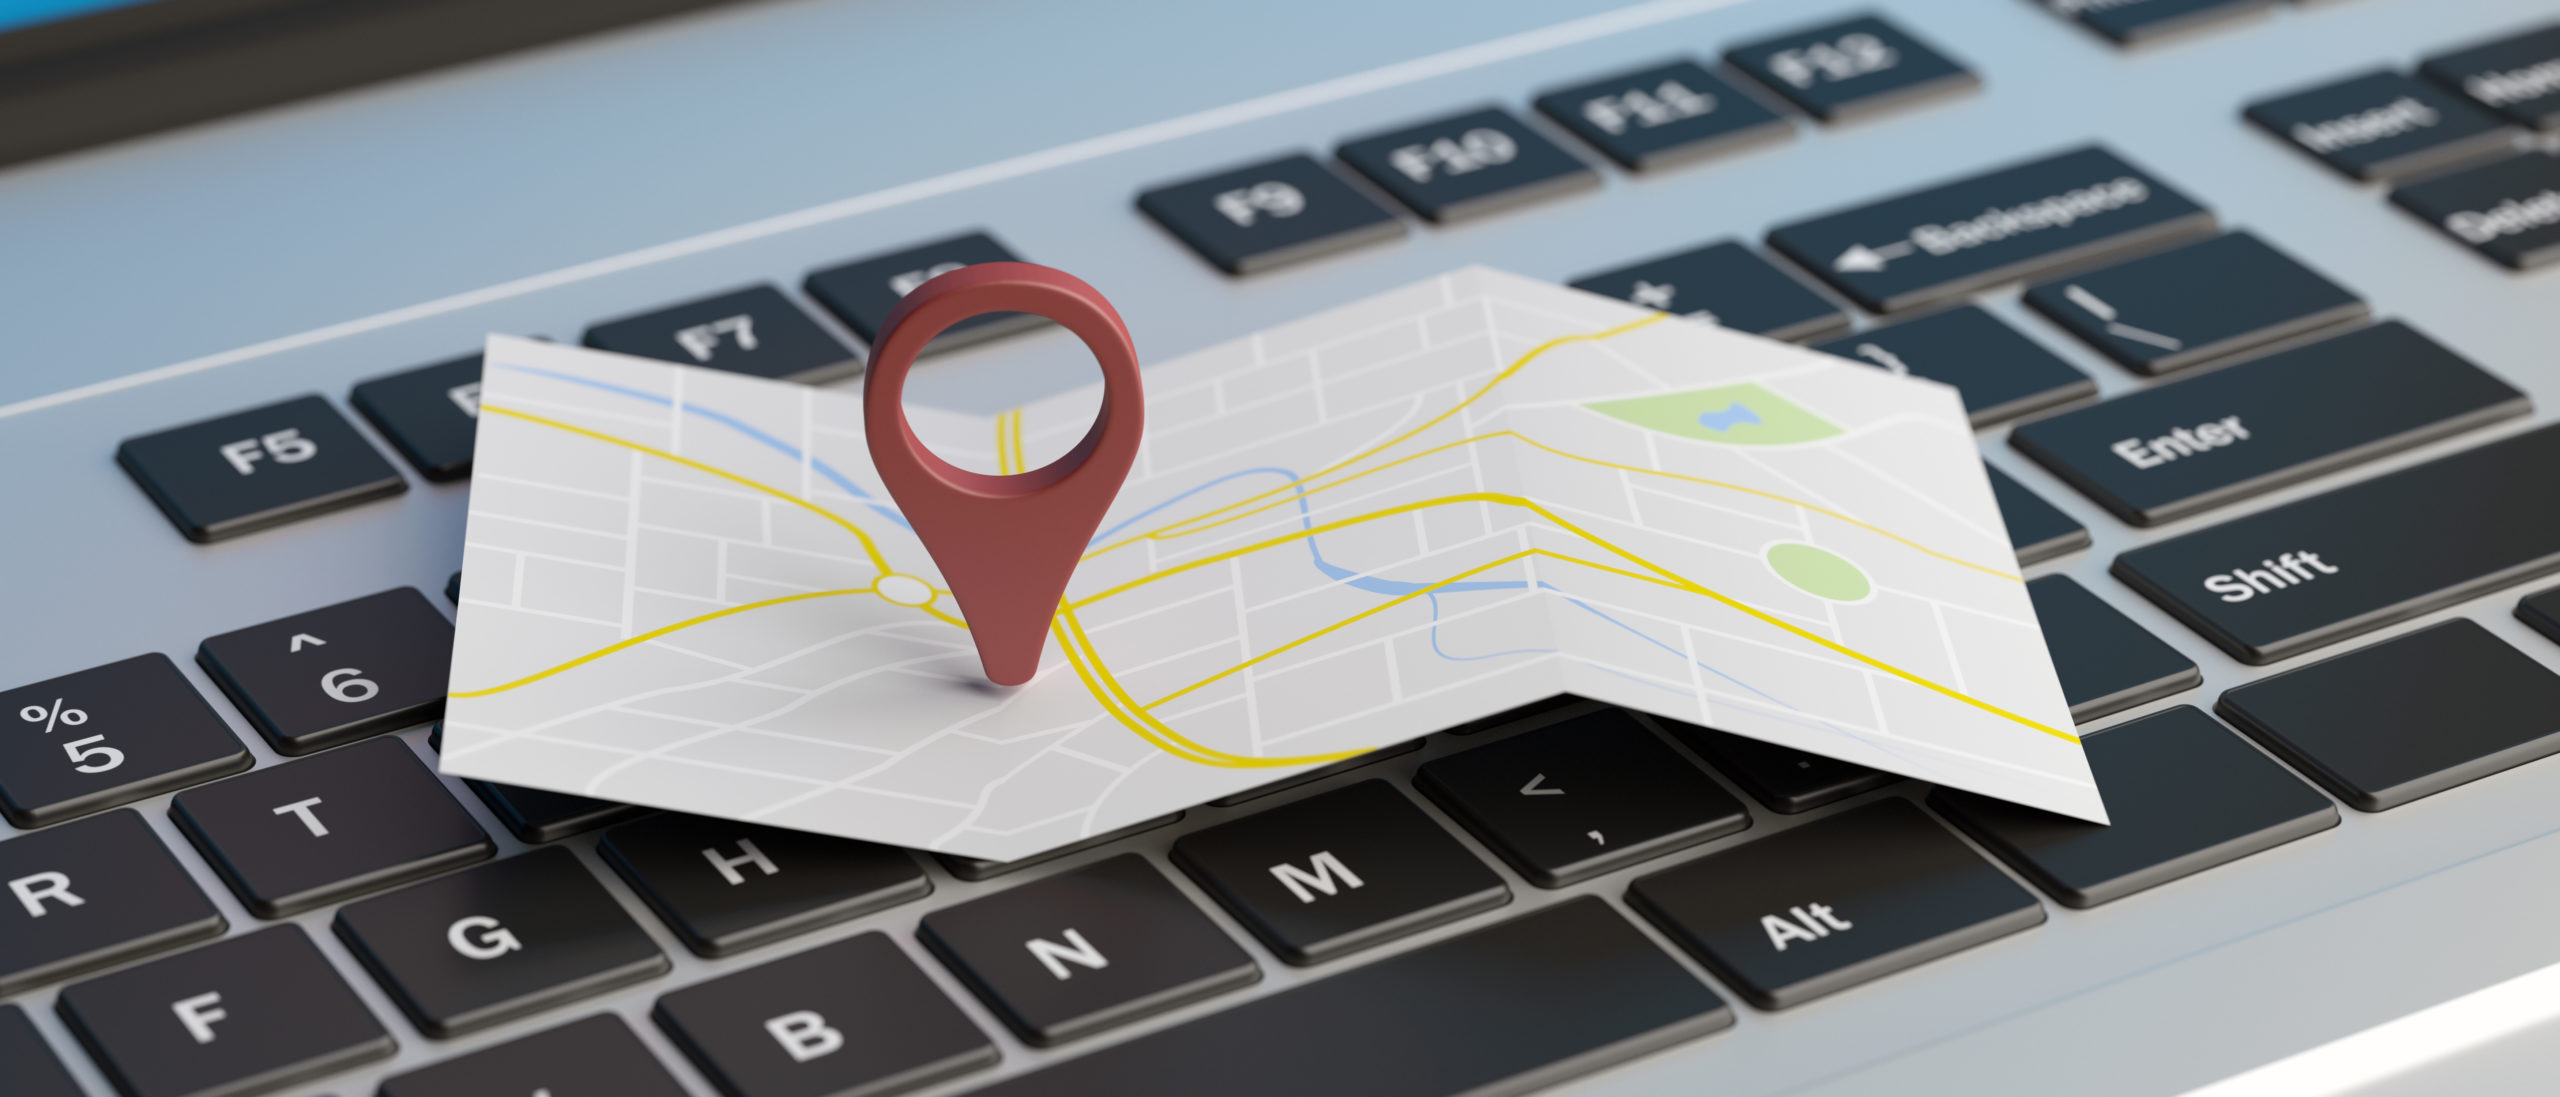 Google My Business: A Free Way To Generate Brand Awareness and Reliability.